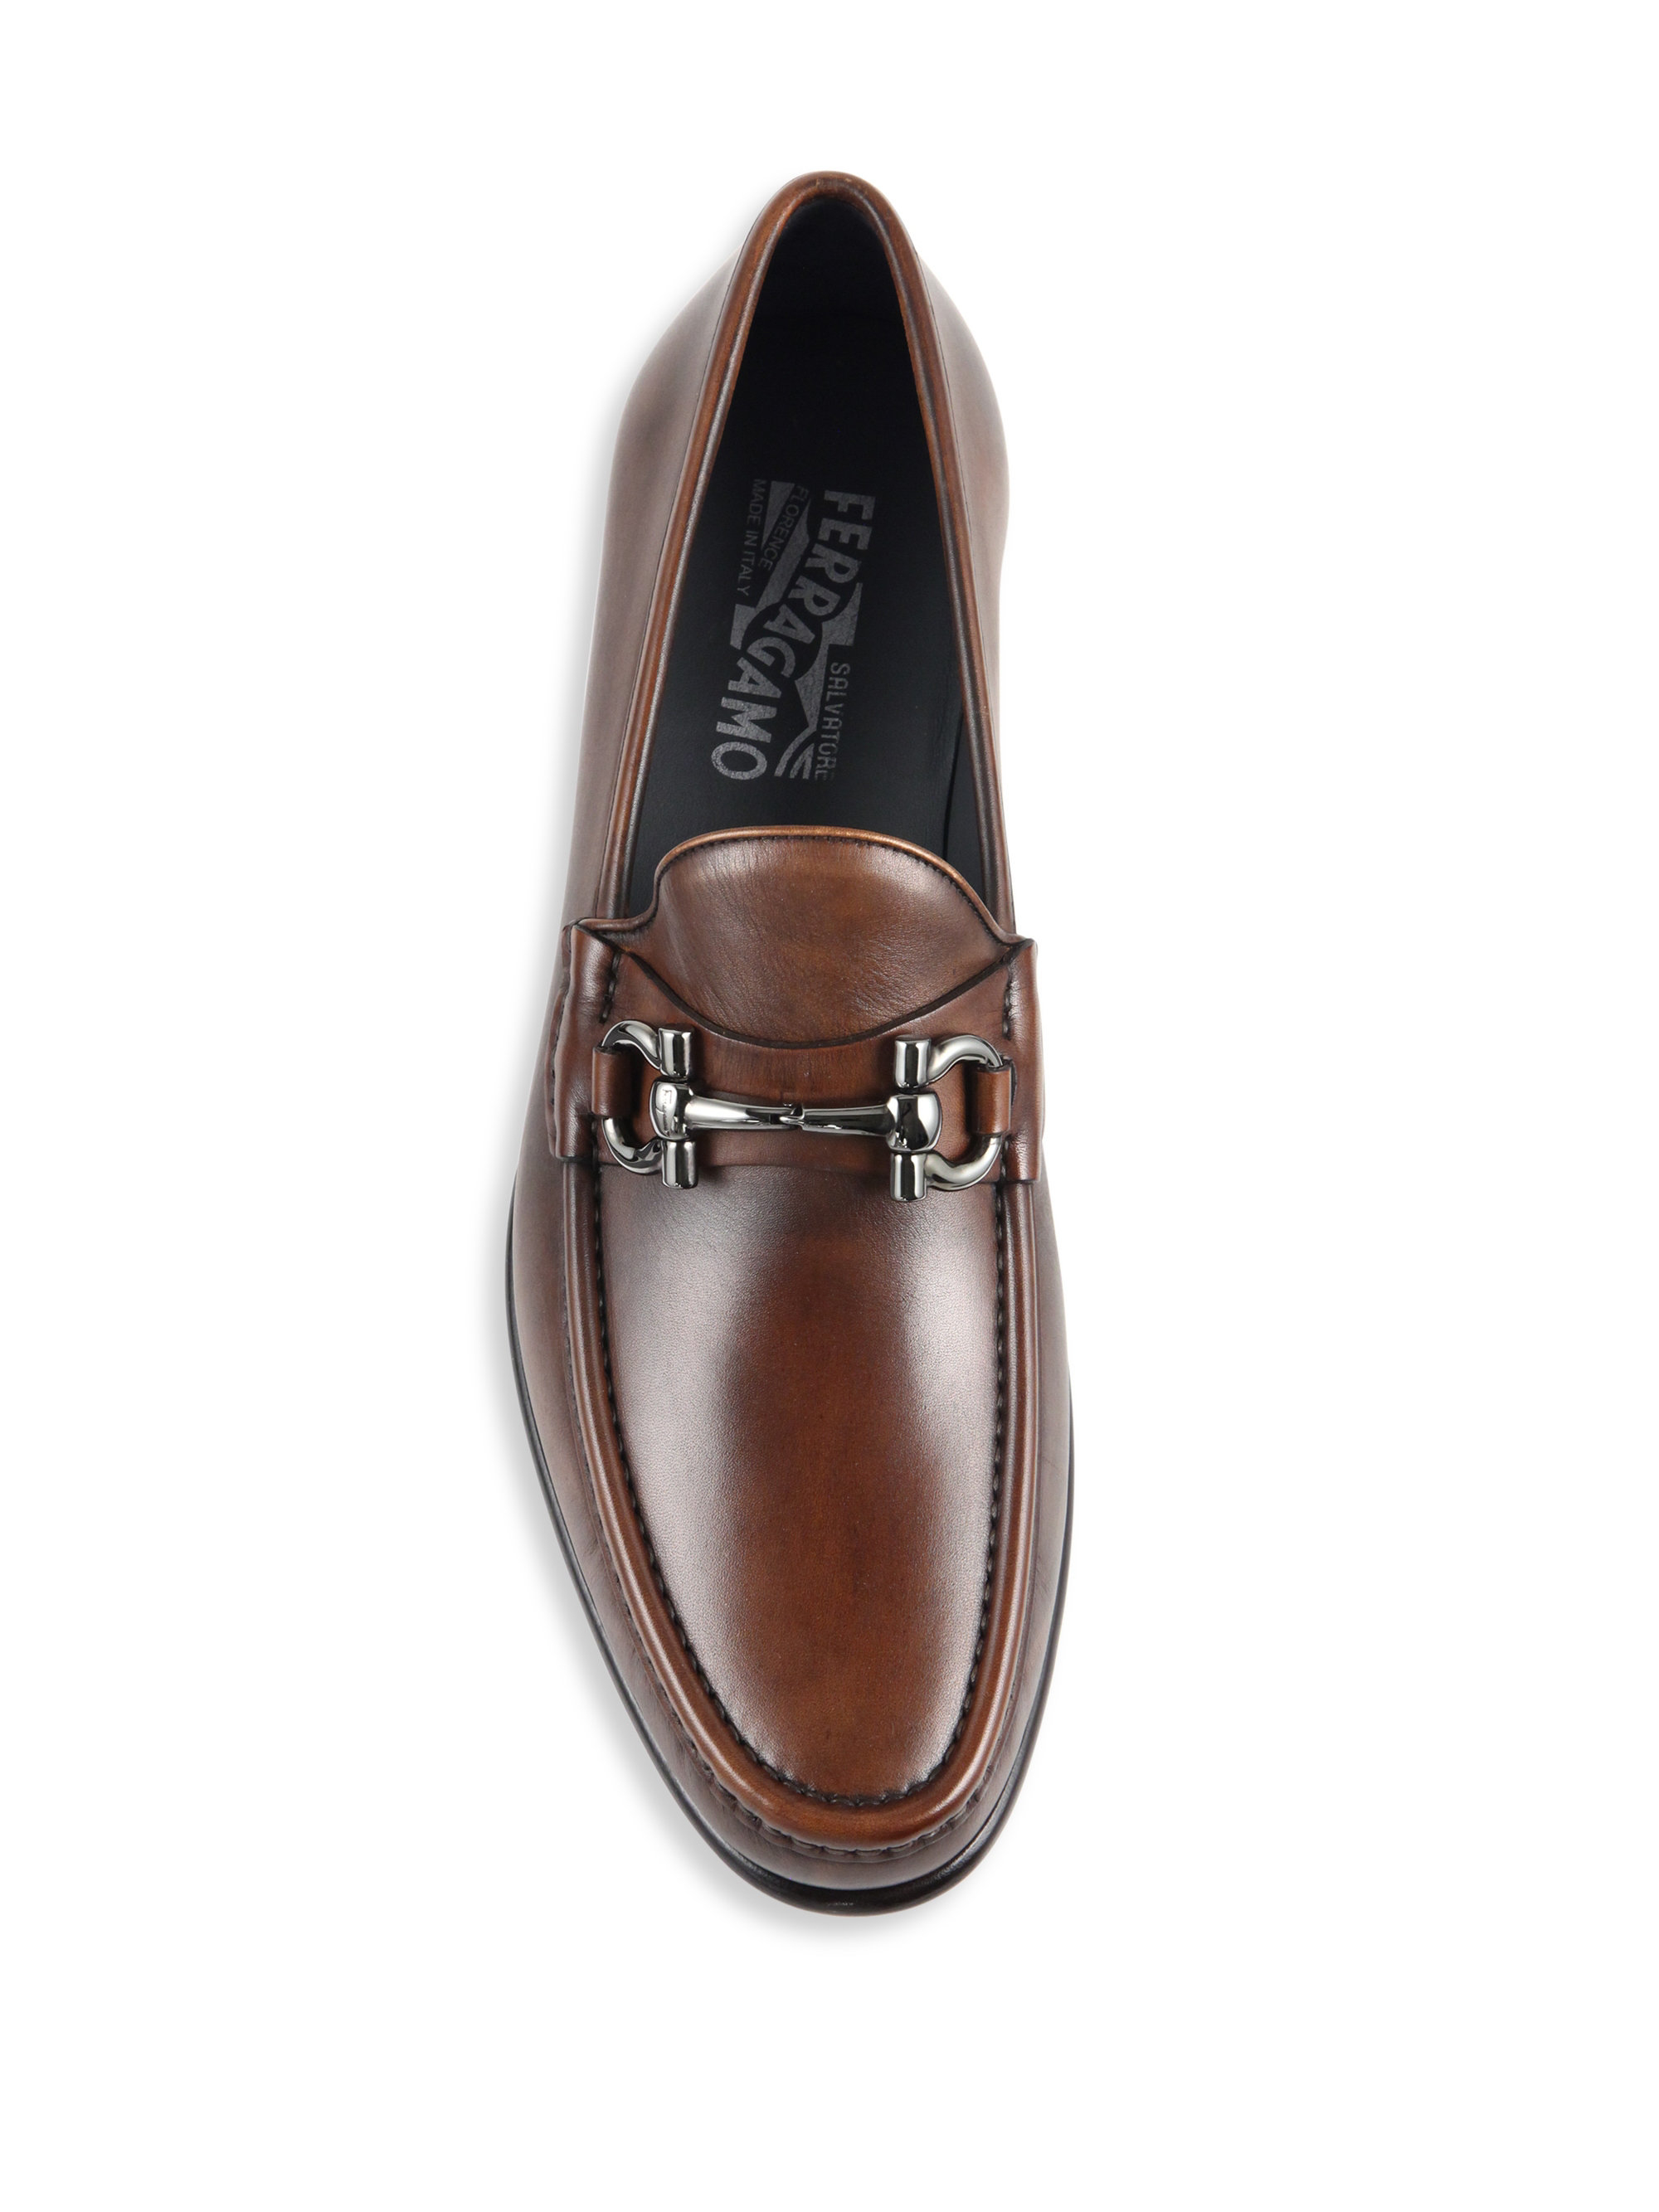 e860c1811aab5 Ferragamo Mason Saddle Pebble Loafers in Brown for Men - Lyst